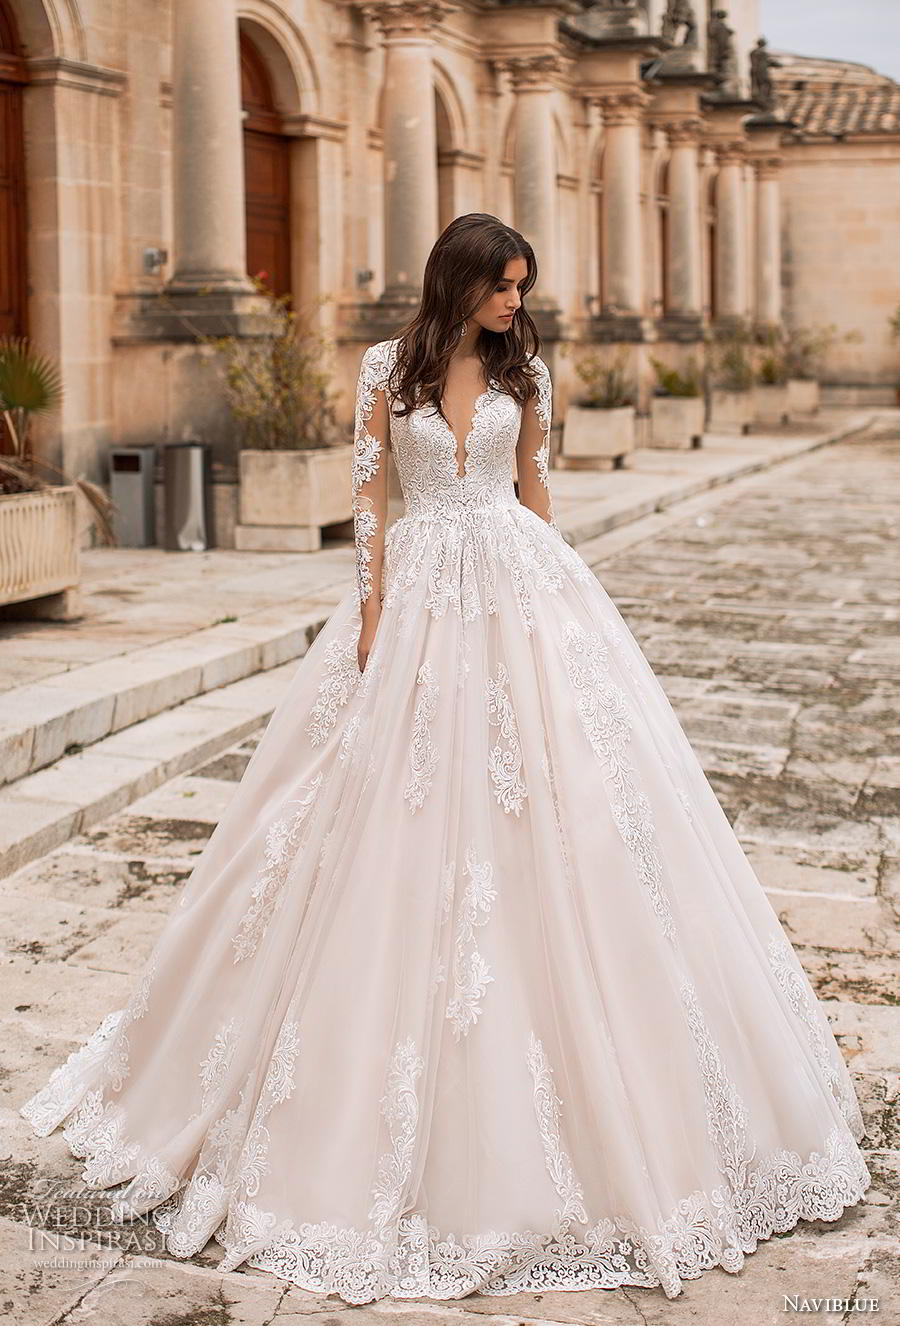 434f6707282 naviblue 2019 bridal long sleeves deep plunging v neck heavily embellished  bodice princess romantic a line